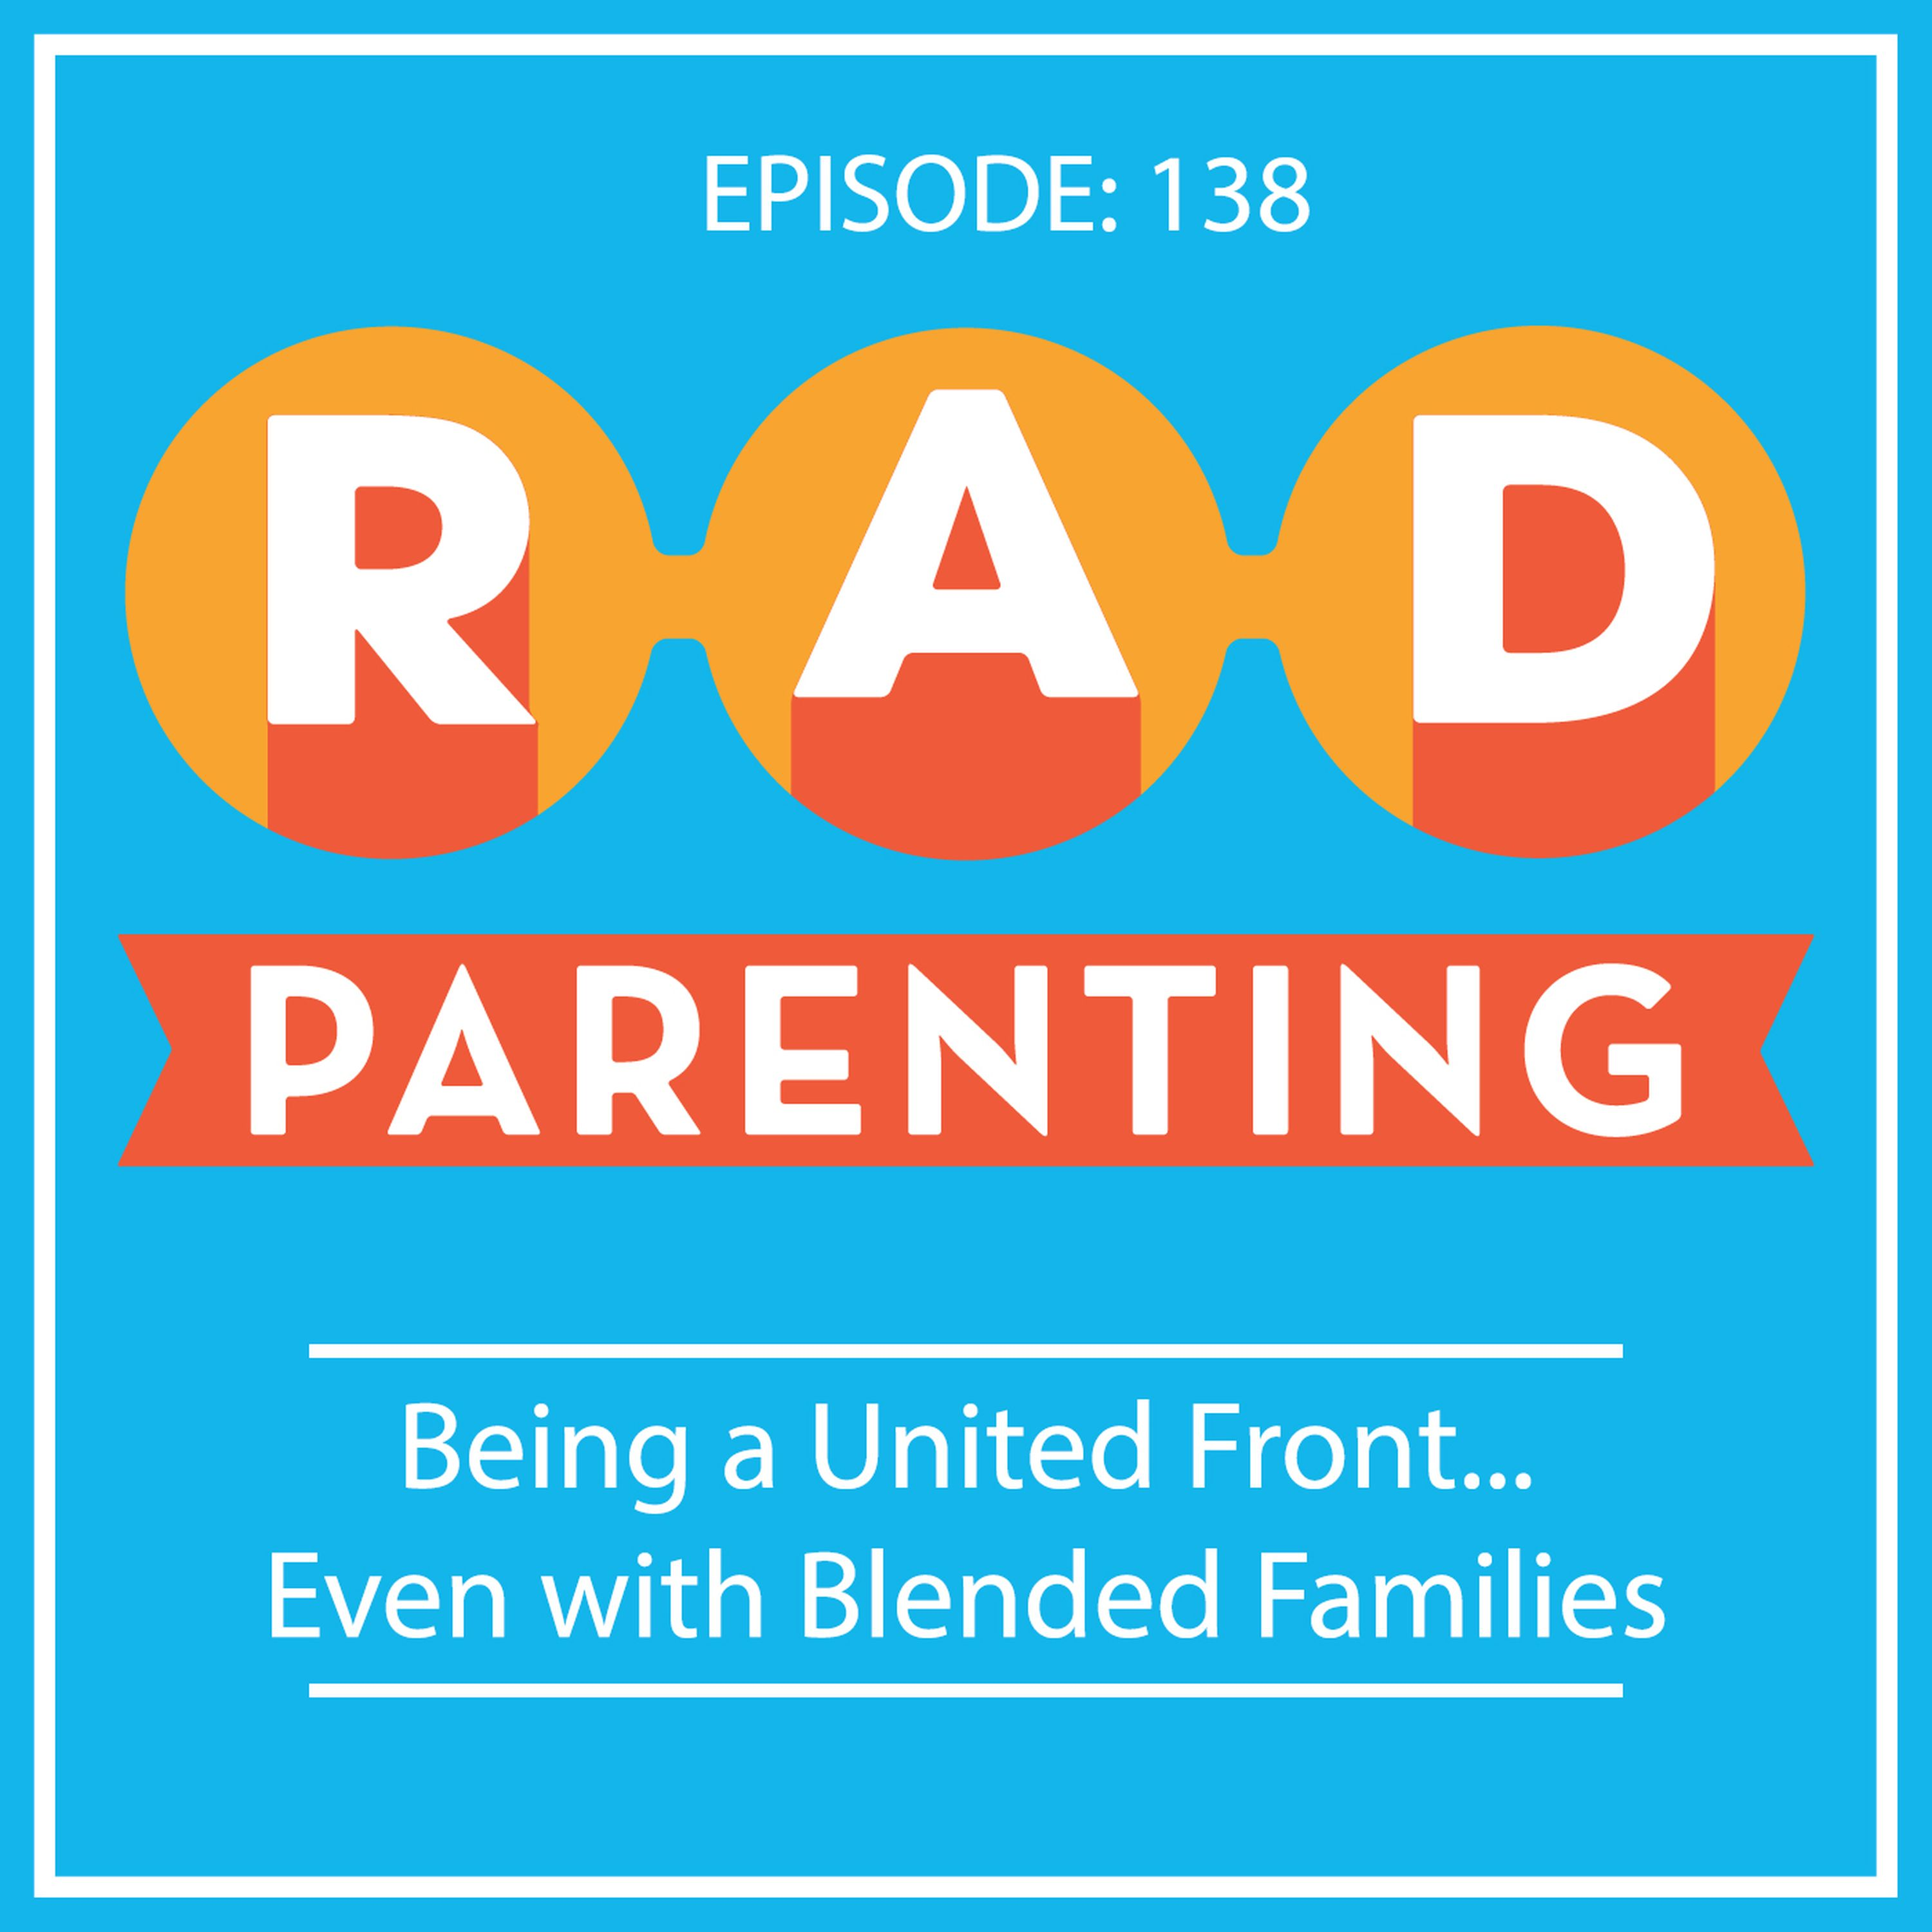 Being a United Front...Even with Blended Families